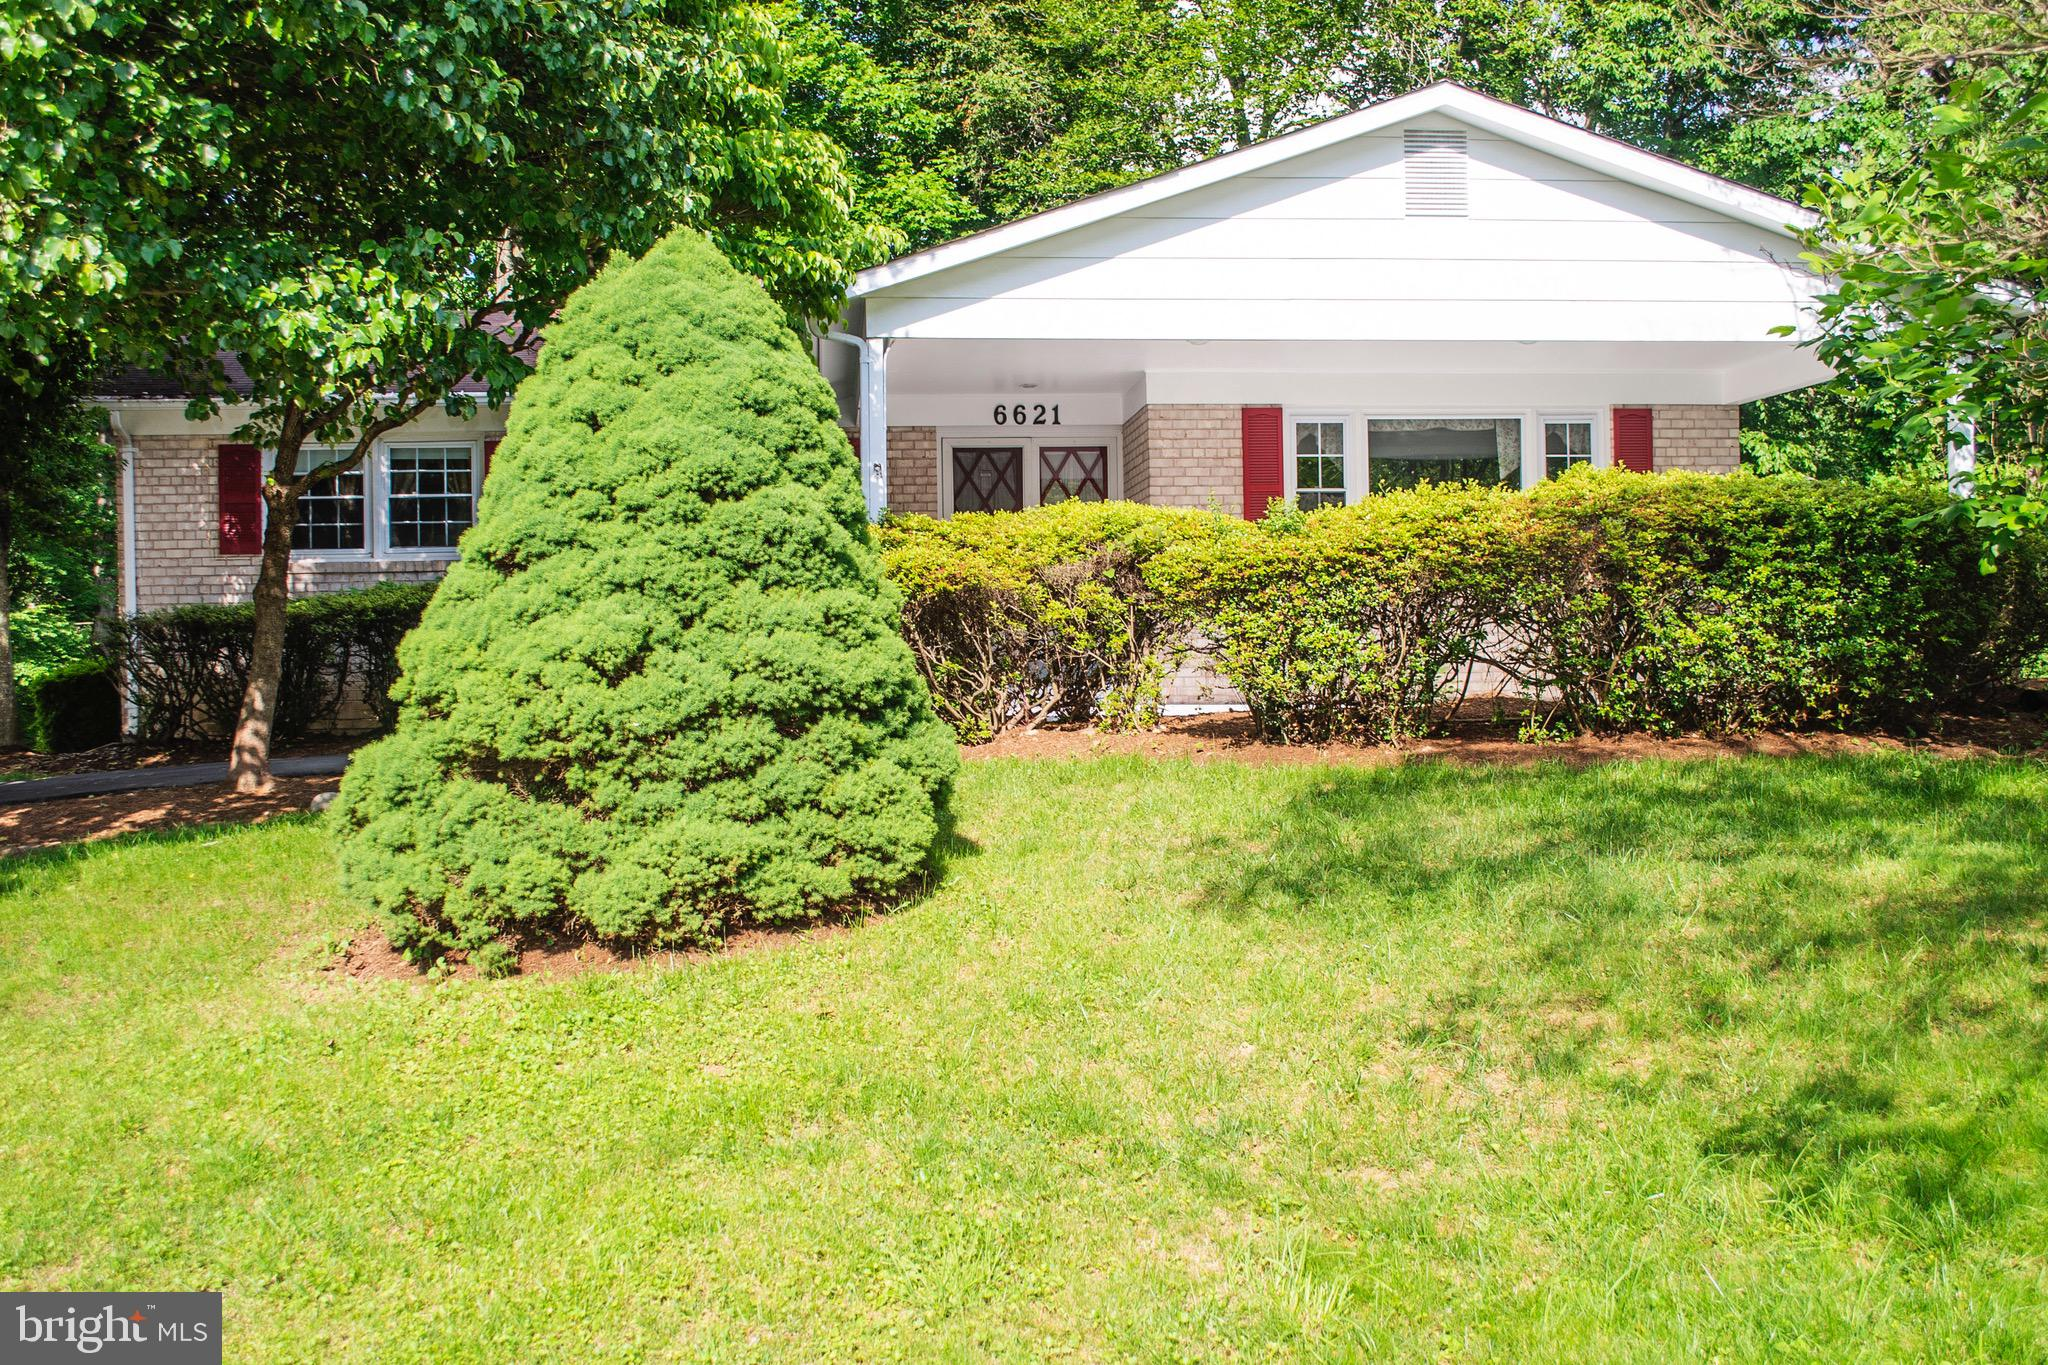 Amazing Location close to everything, shopping, restaurants, entertainment, main Roads, etc. Granite counter tops. Huge deck for entertainment, Wet bar in basement. Walk out basement.UPDATE Windows were replaced in 2014, basement floring wre replace in 2014 , HVAC WRE REPLACE IN 2012 ,Must see it. Please Allow 2 hour notice for showings to remove or crate small dog.